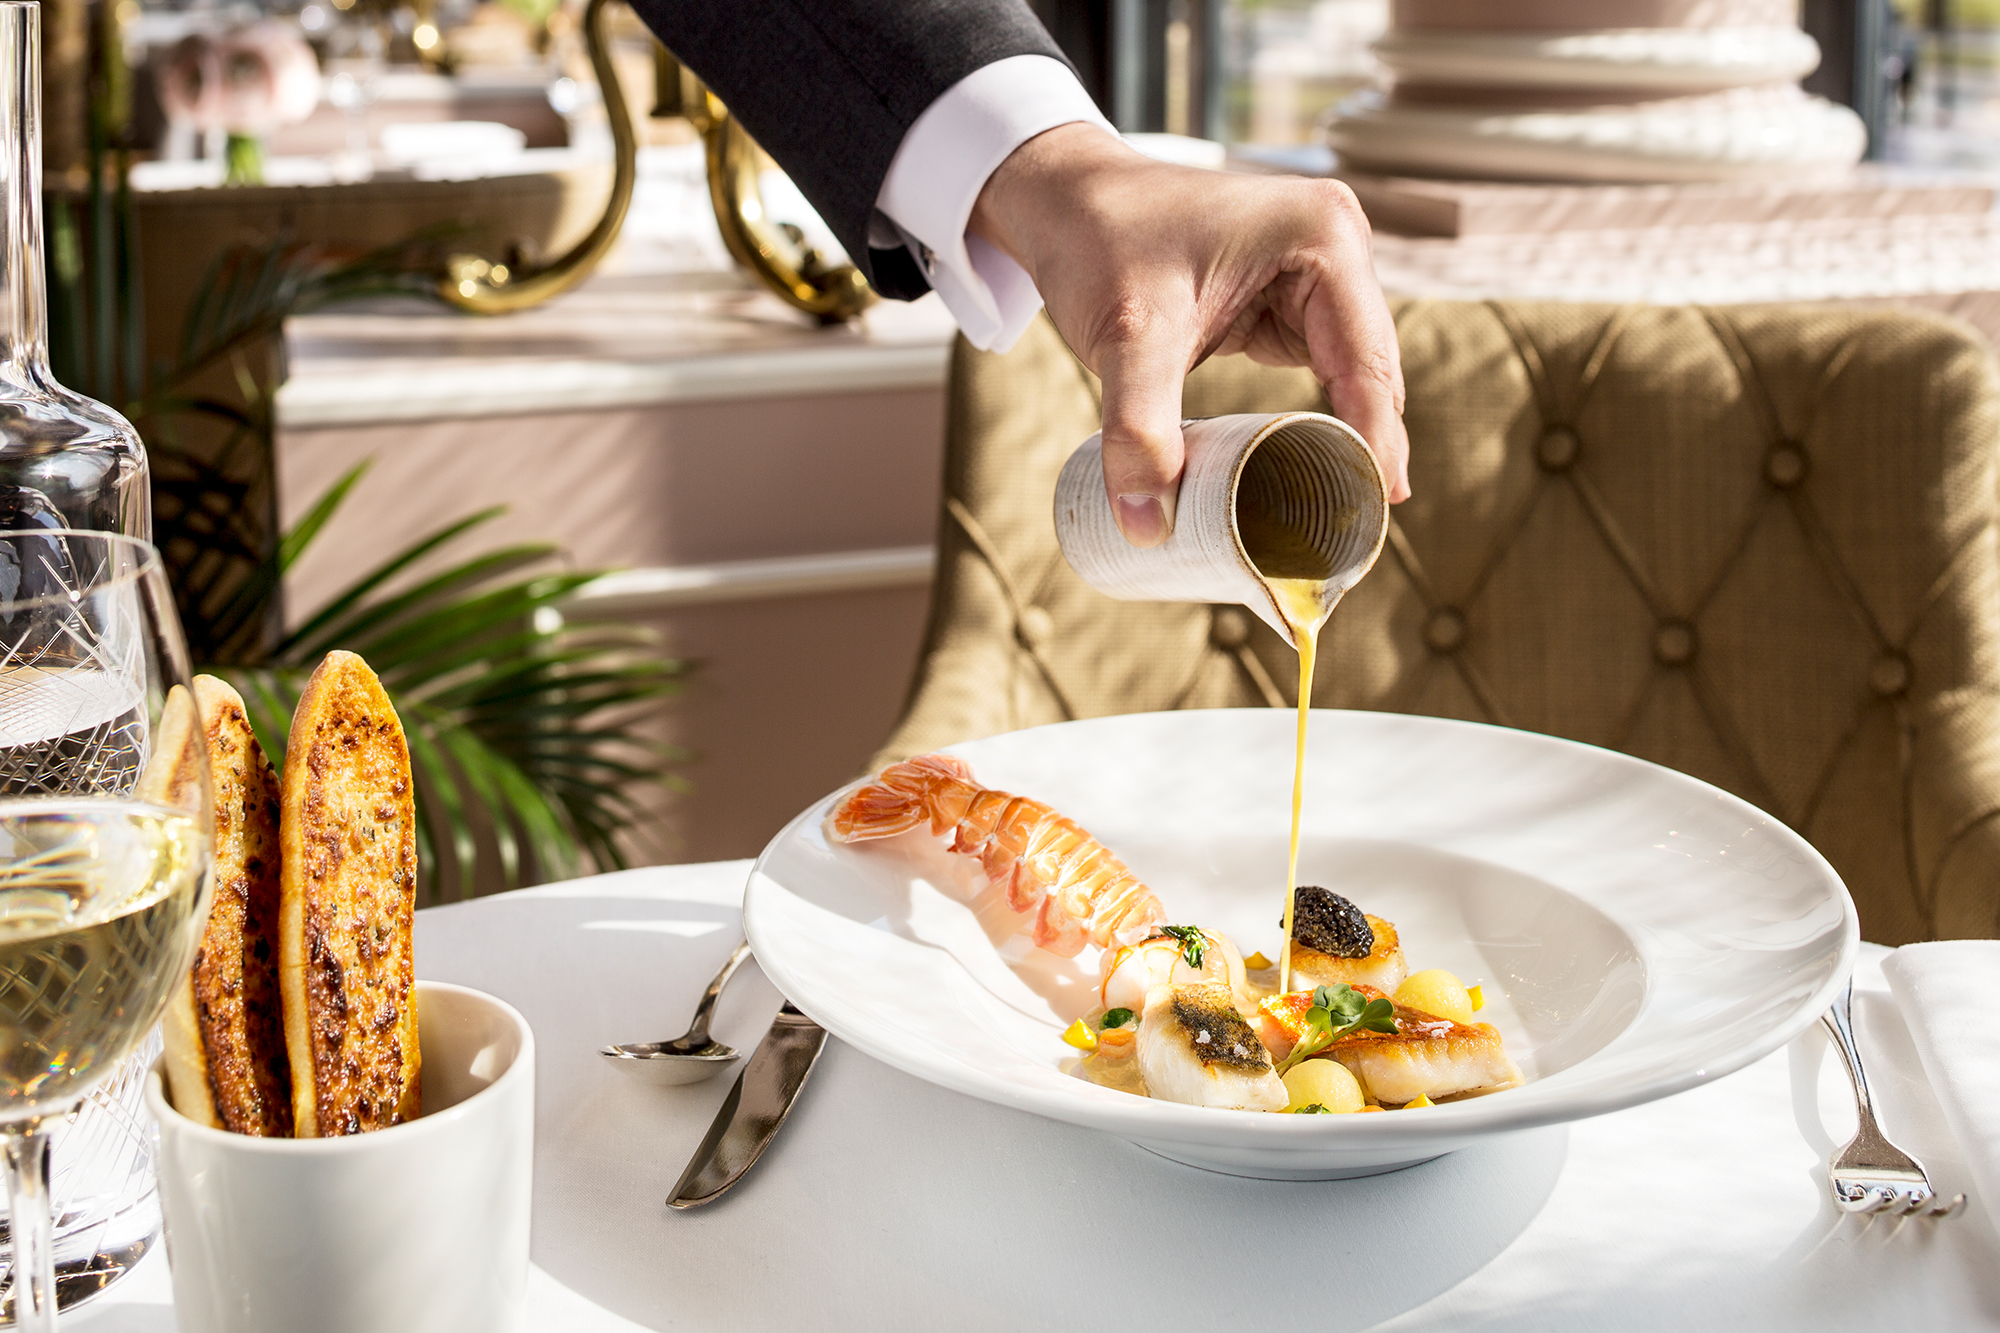 Mediterranean-inspired fare at the Victoria-Jungfrau Grand Hotel's La Terrasse restaurant.